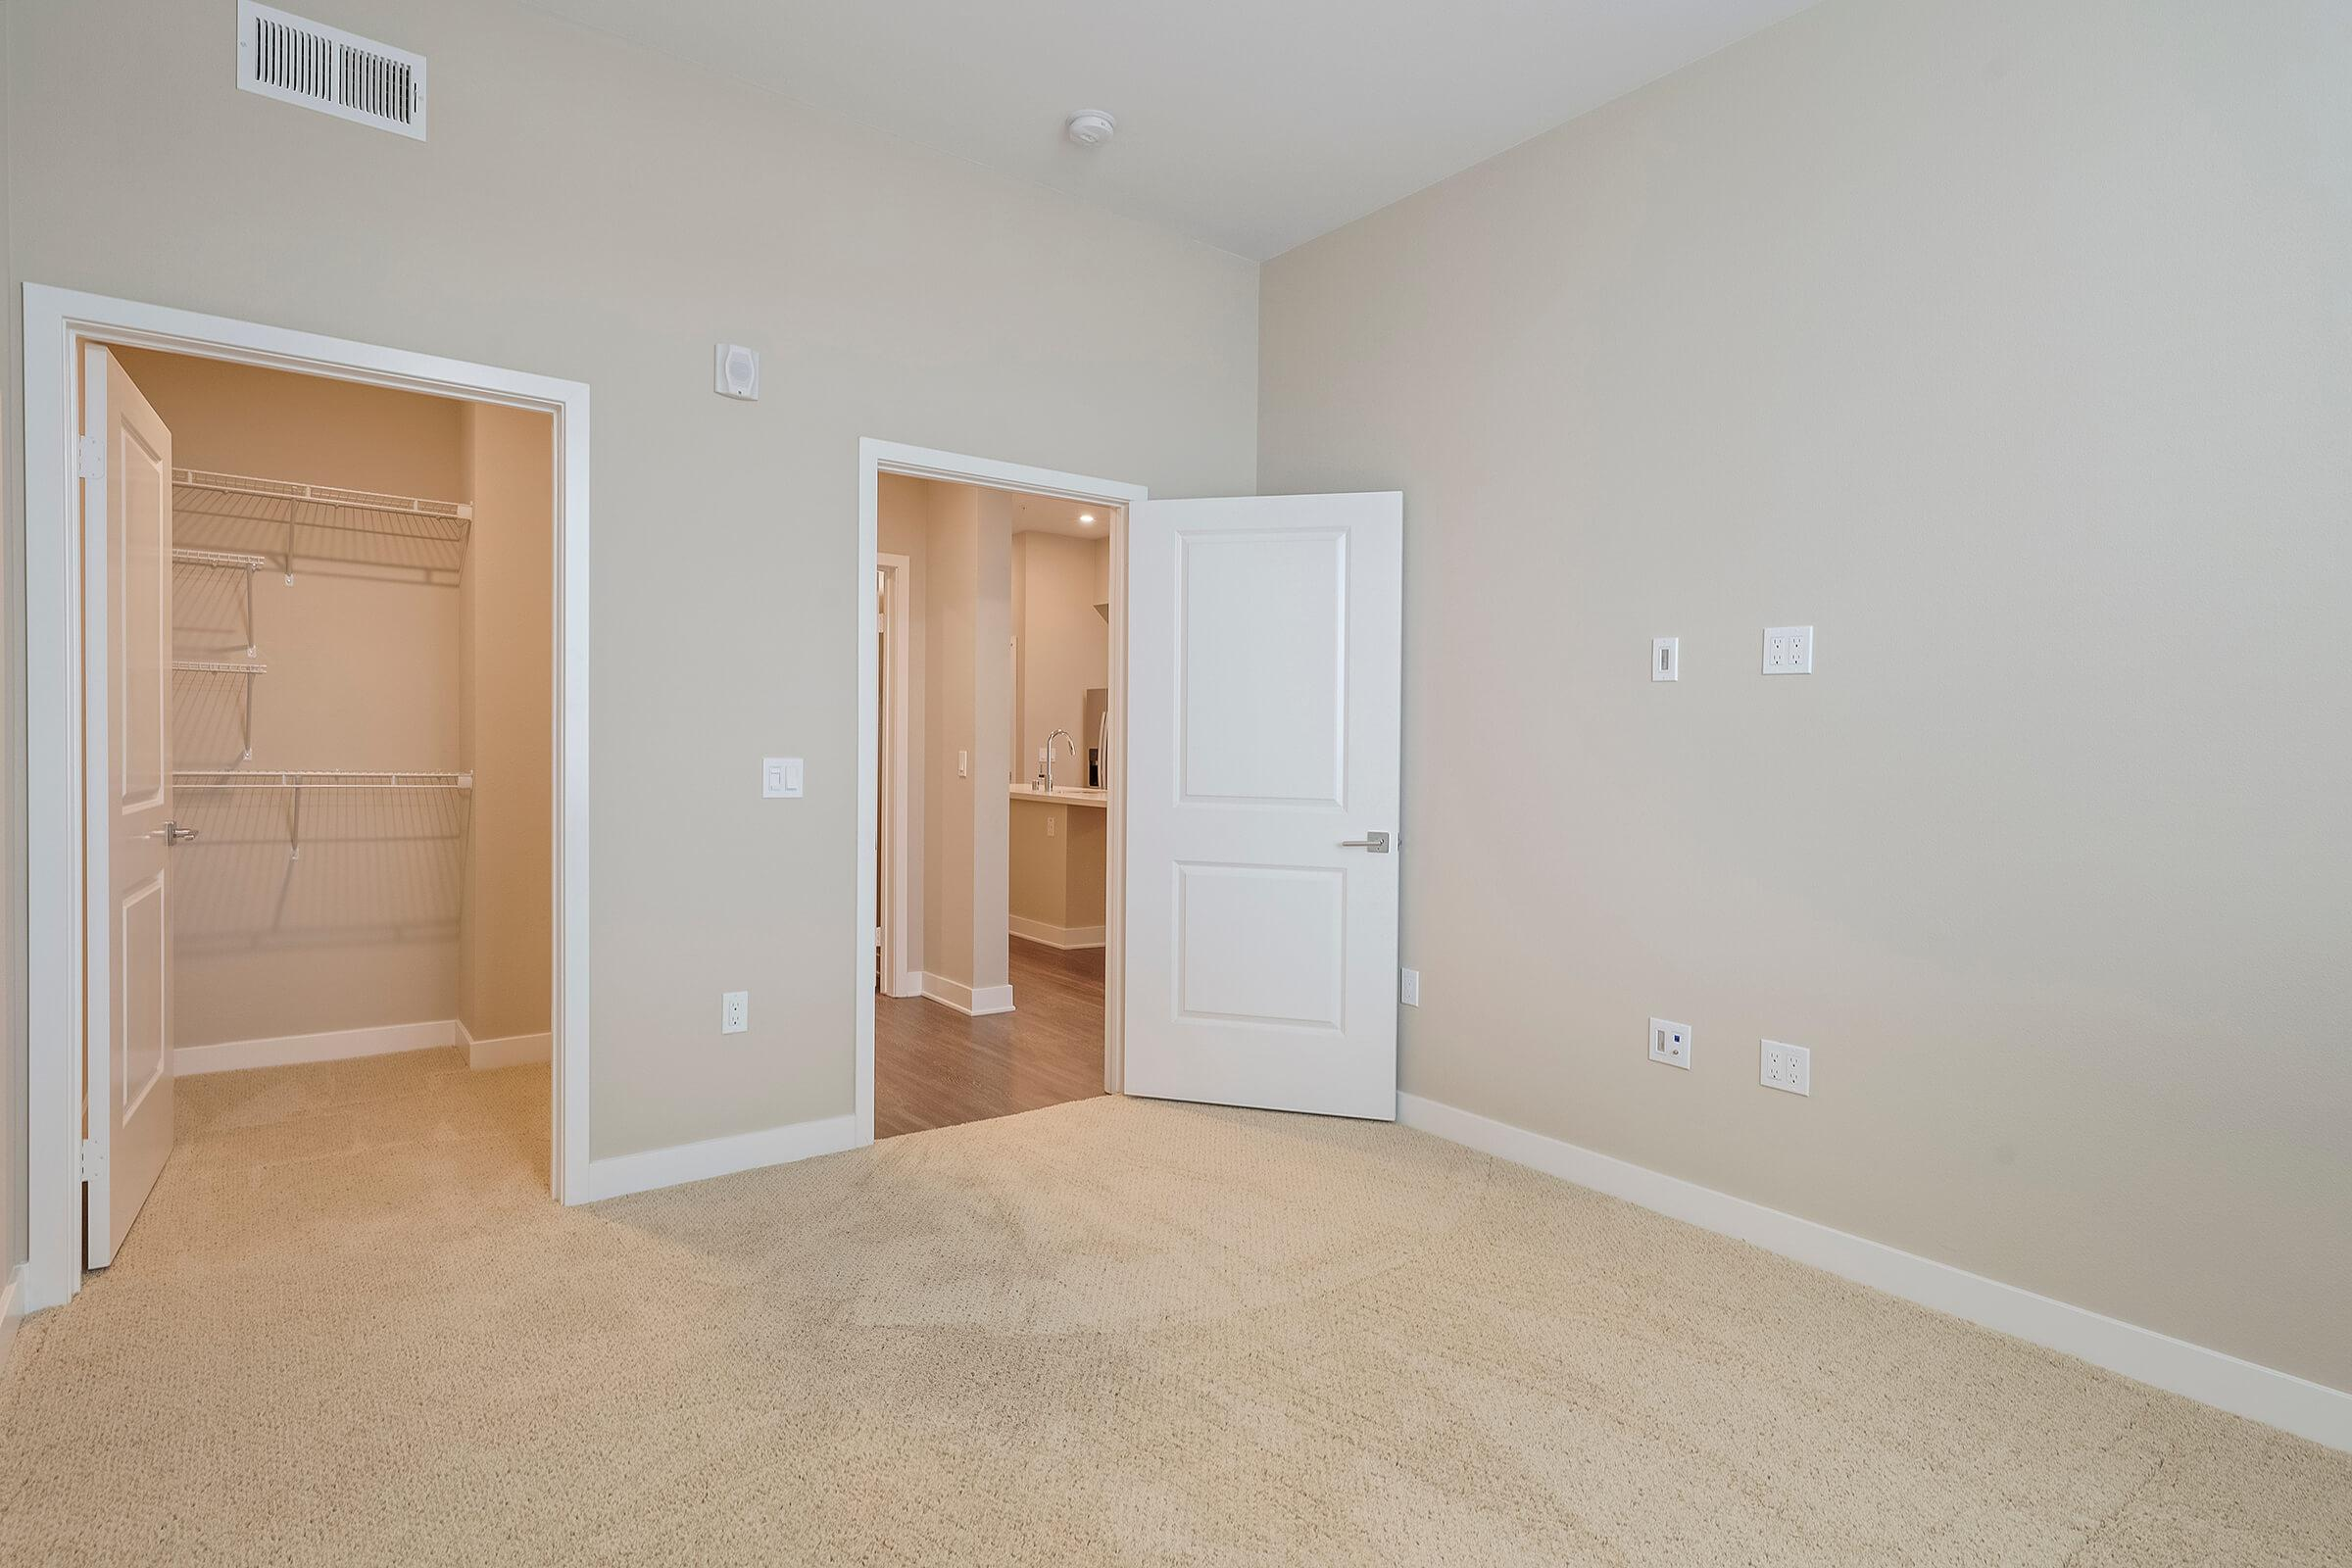 Carpeted bedroom with walk-in closet